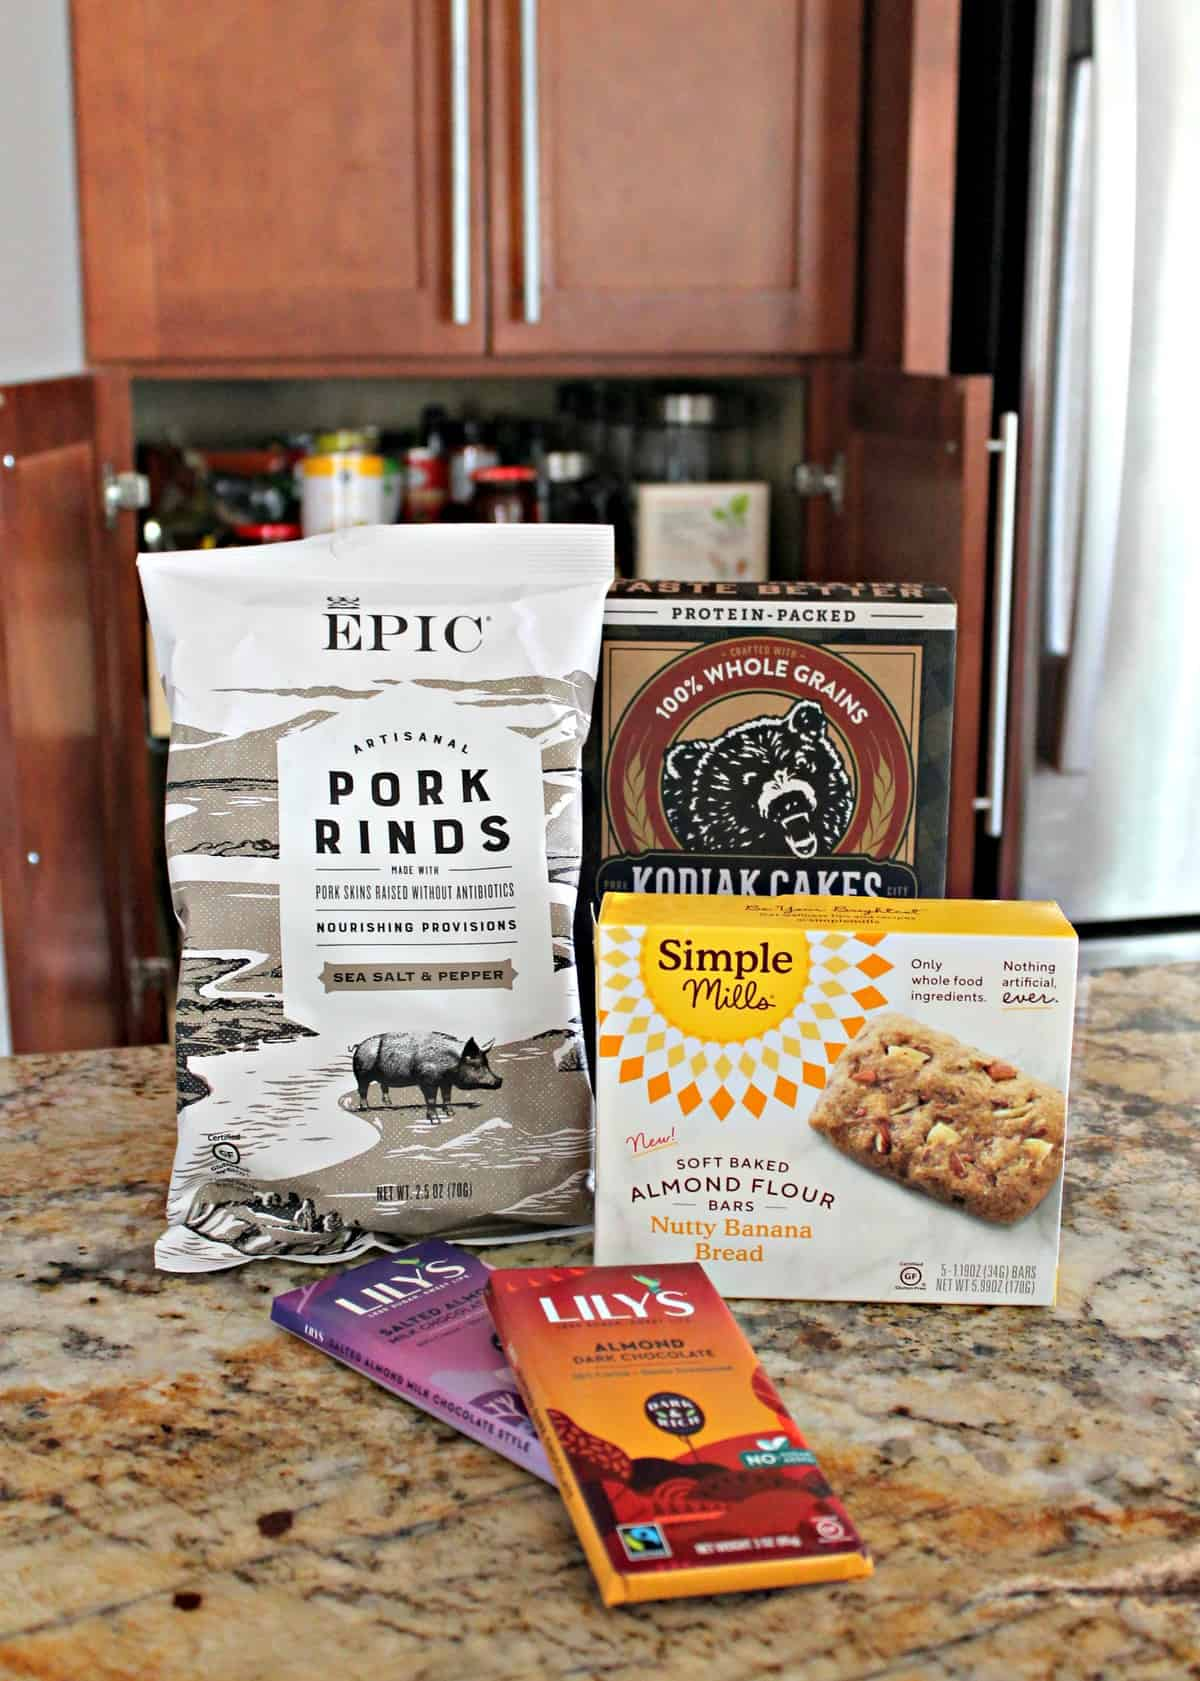 Pantry essentials on countertop.